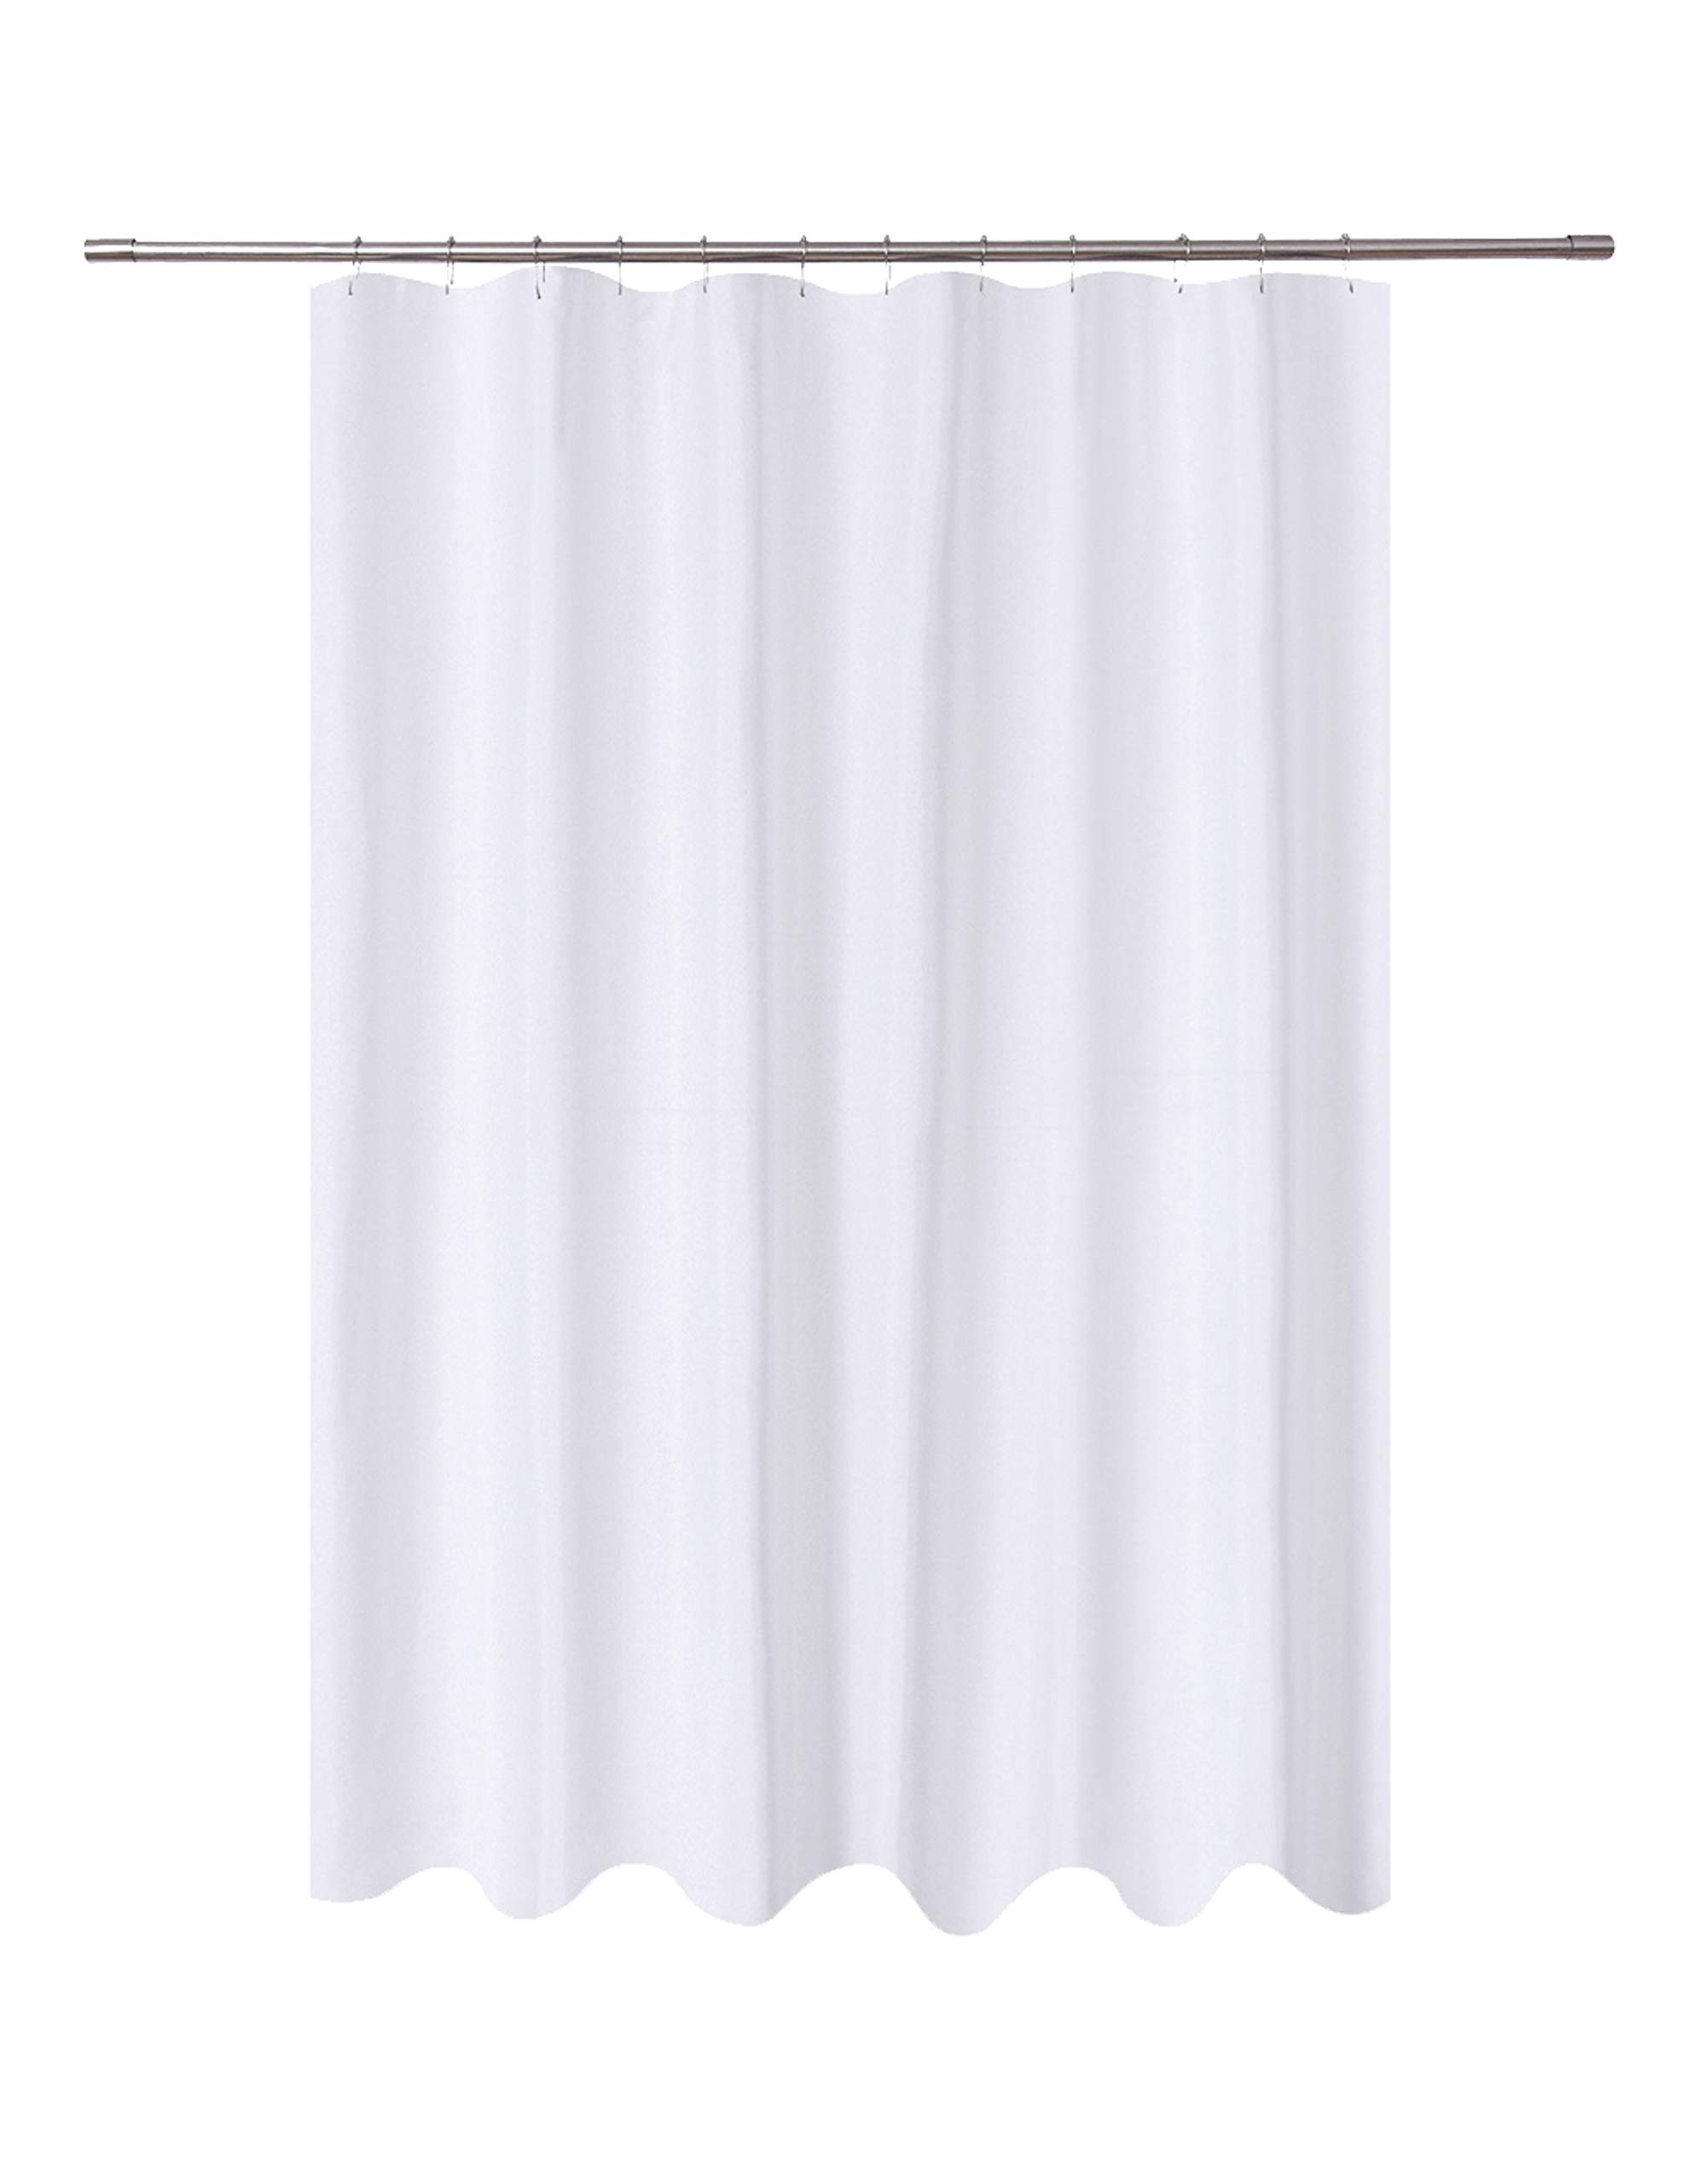 Details About NY HOME Fabric Shower Curtain Liner White Extra Long 72 X 84 Inch Hotel